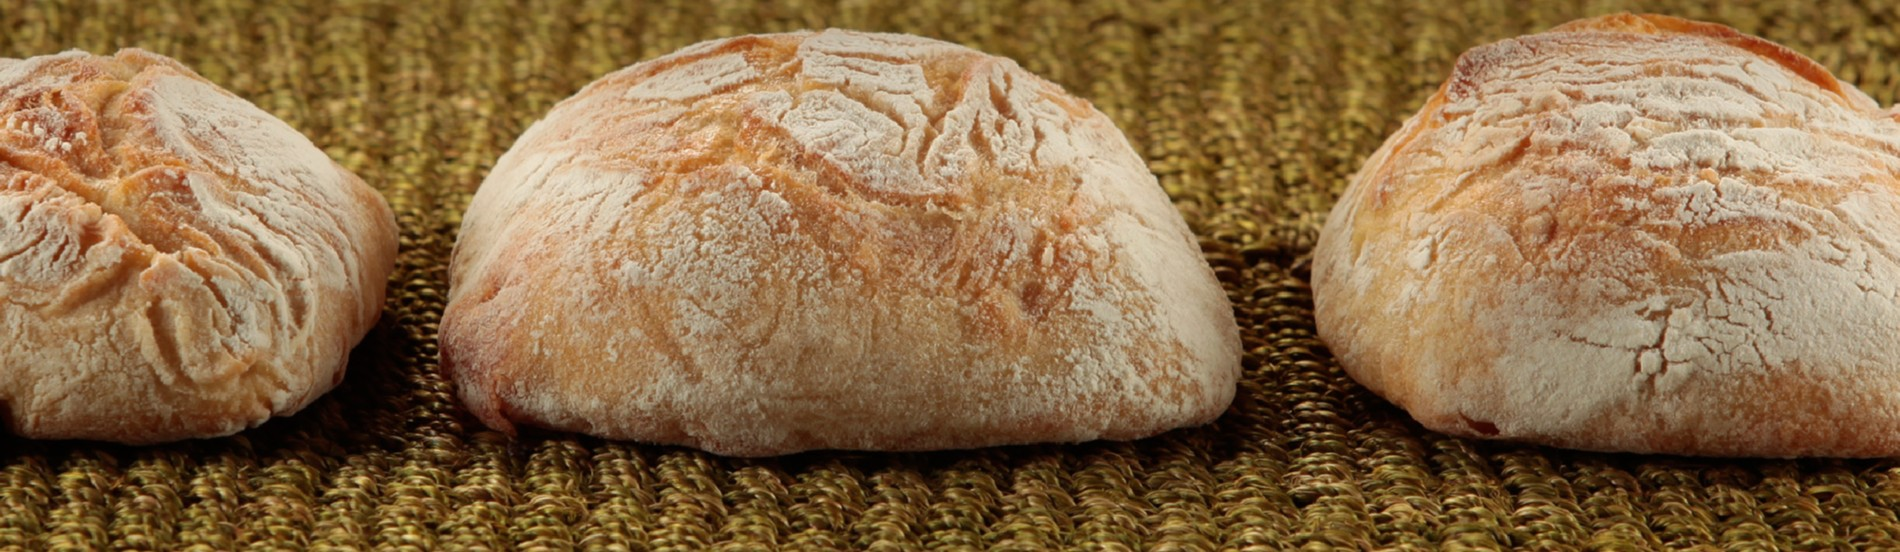 Olde Hearth Bread Company